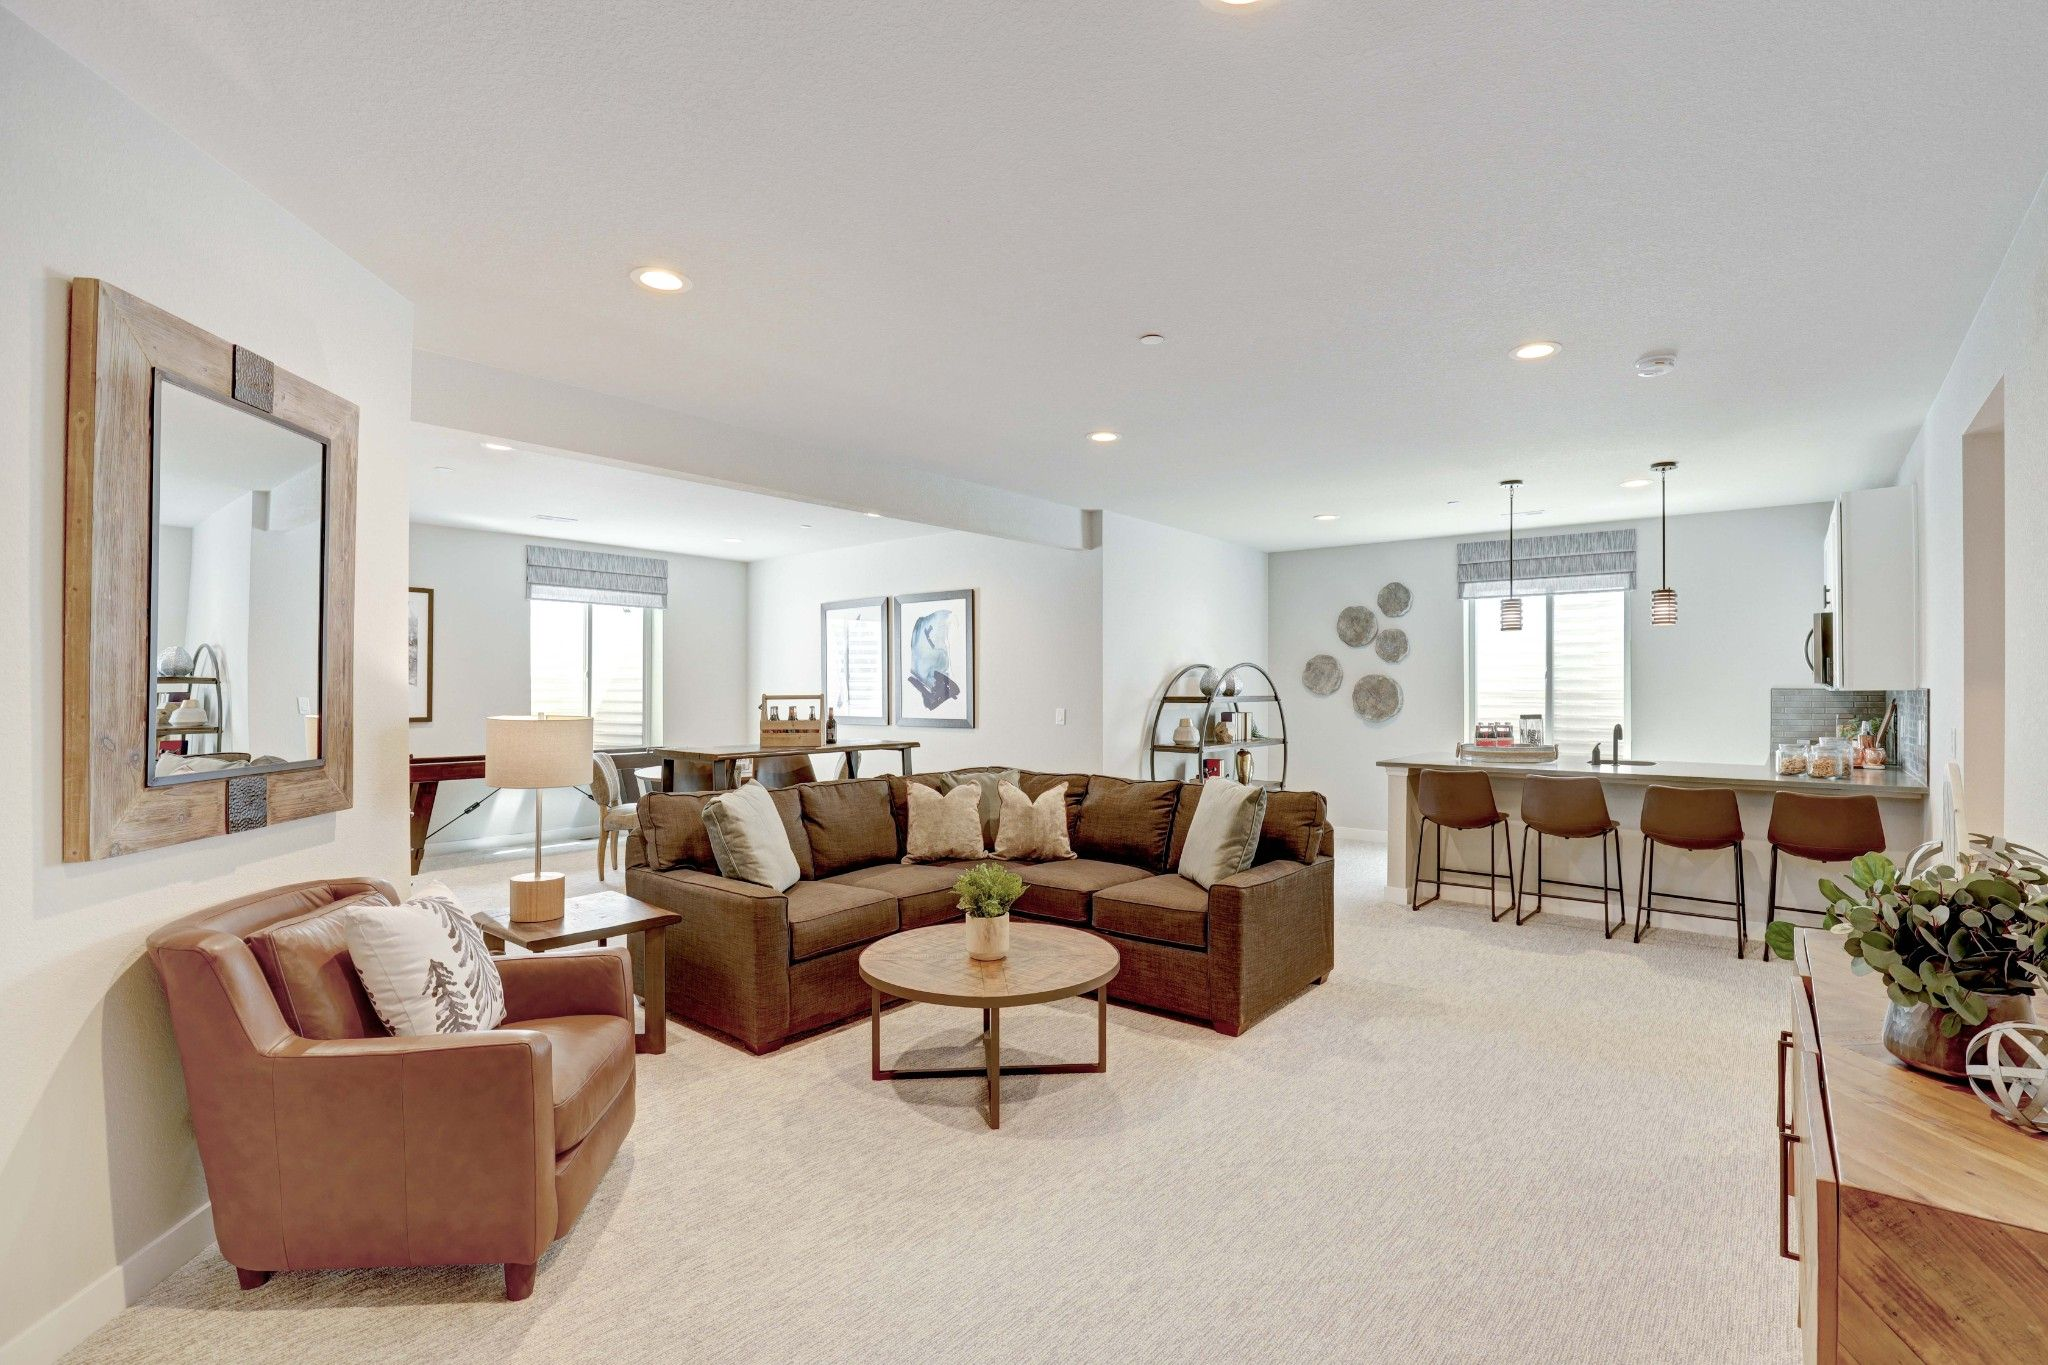 Living Area featured in the Penrose - Enclave at Prairie Star By RichfieldHomes